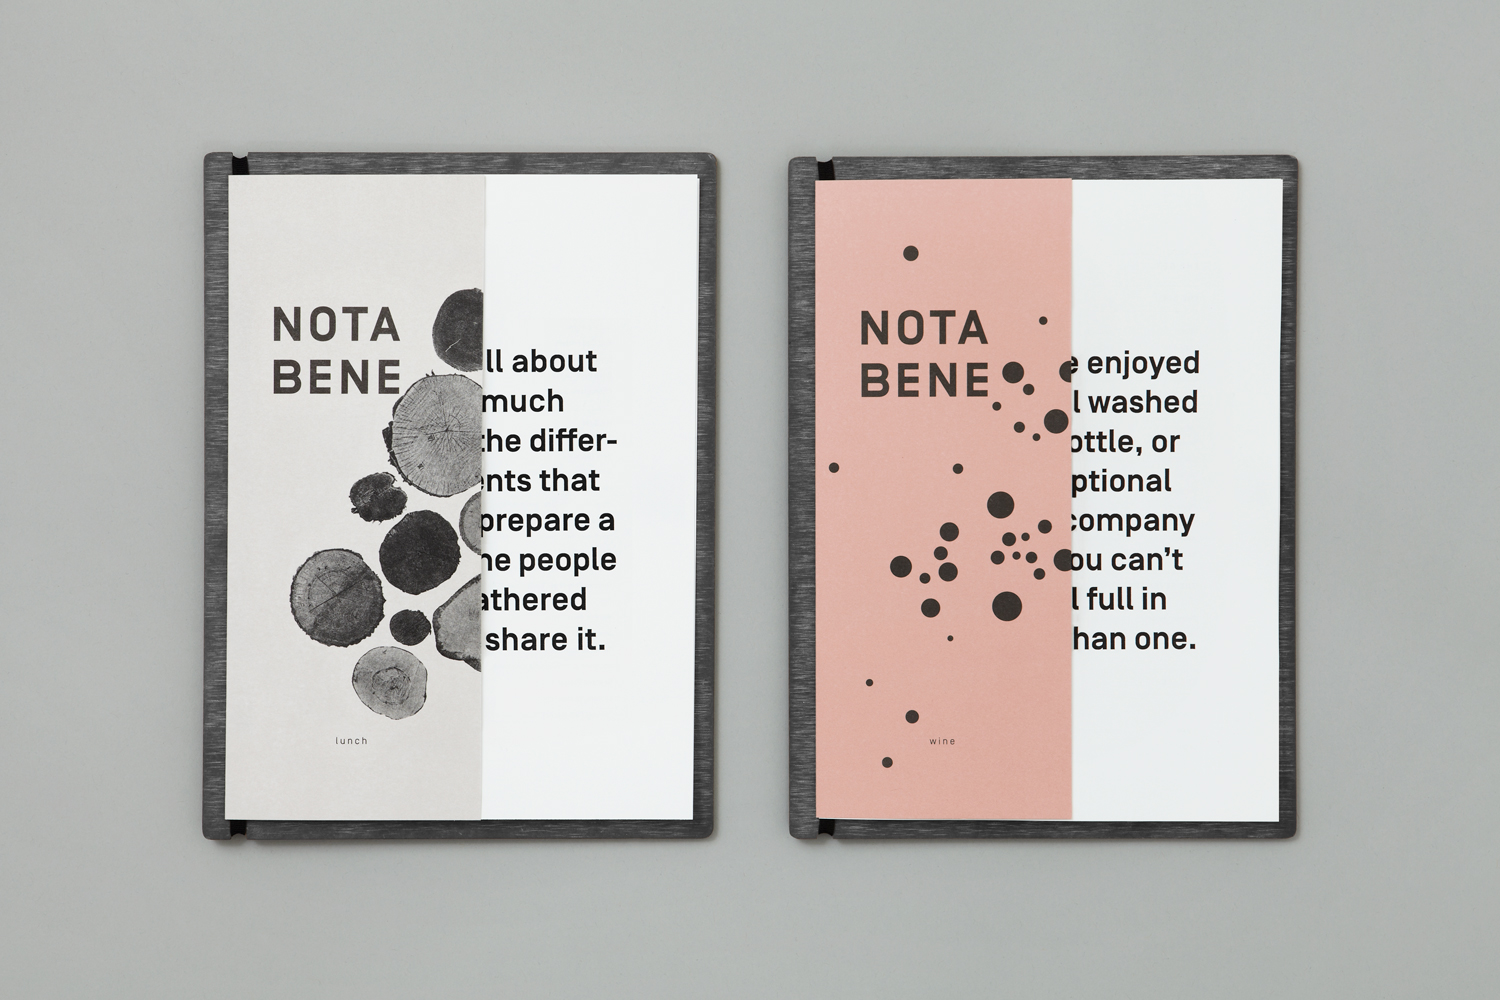 Brand identity and menu for Toronto restaurant Nota Bene by graphic design studio Blok, Canada